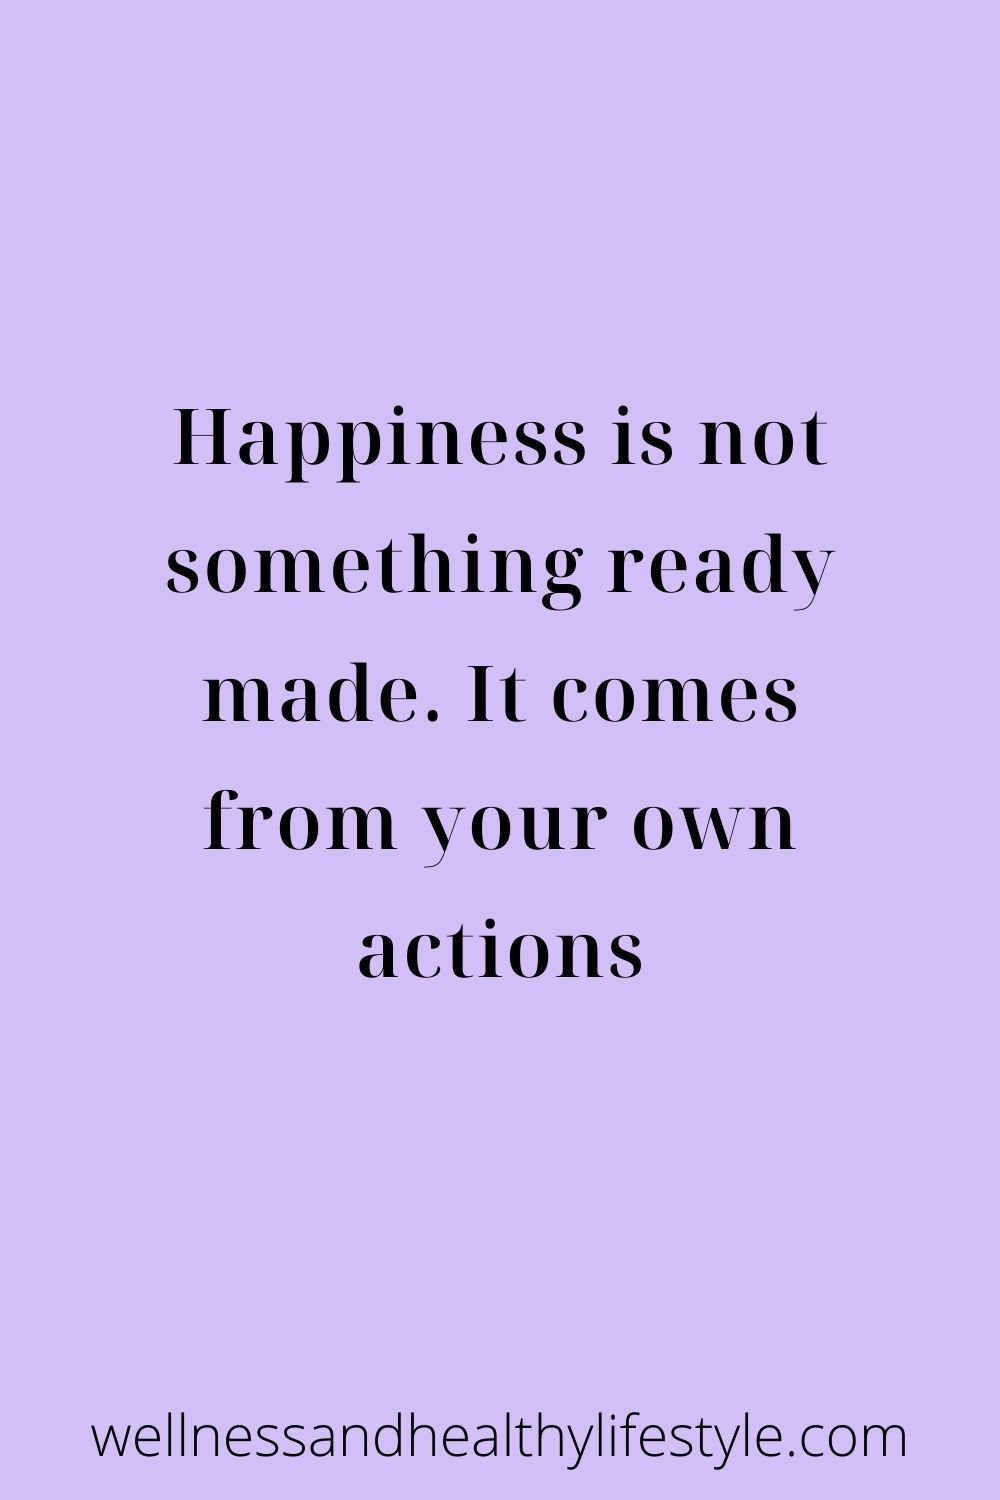 11 Quotes To Transform Your Life In 2020 Transform Your Life Beautiful Quotes Quotes